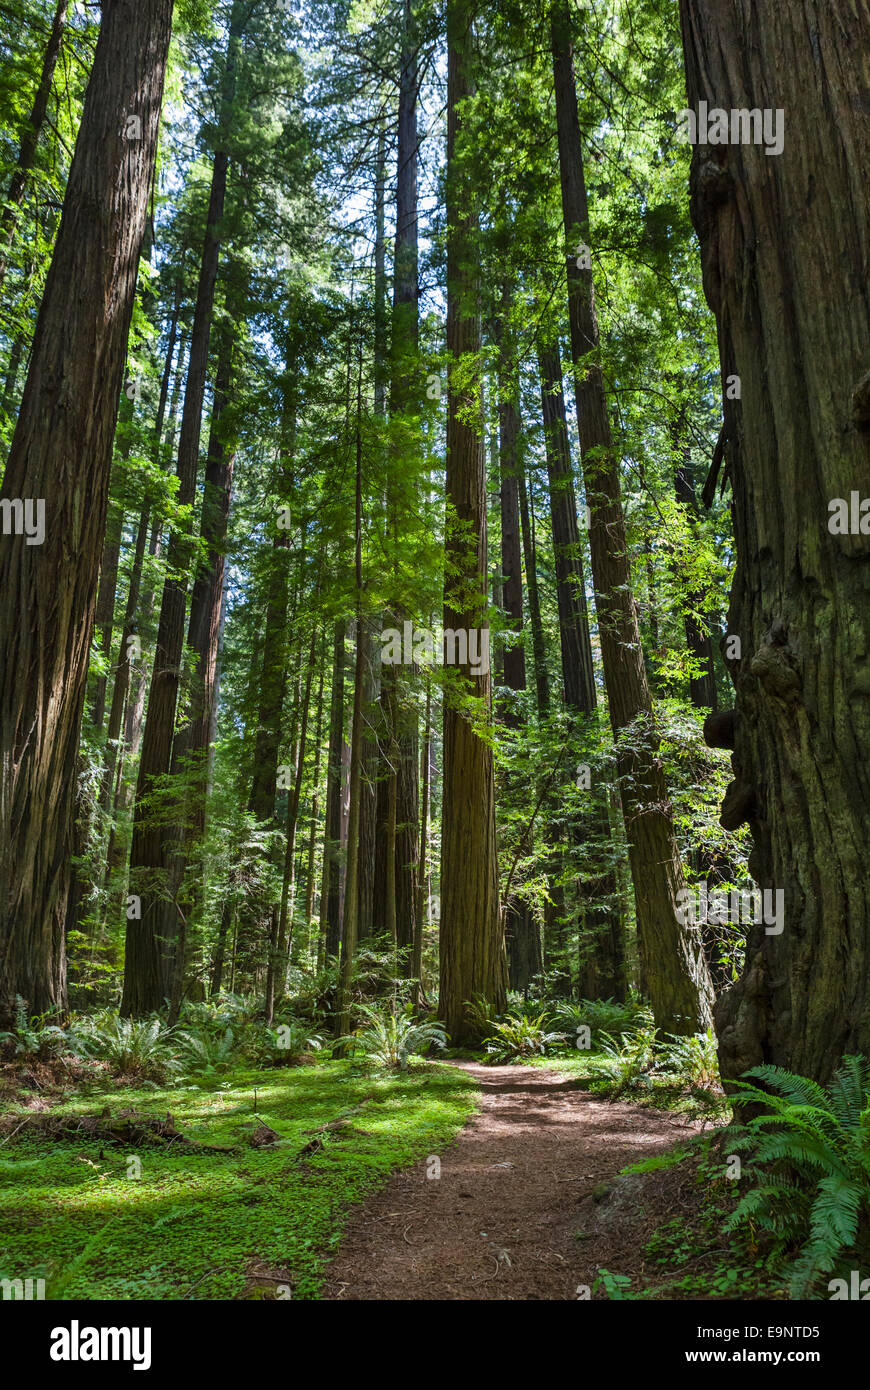 Trail in Founders Grove, Avenue of the Giants, Humboldt Redwoods State Park, Northern California, USA - Stock Image